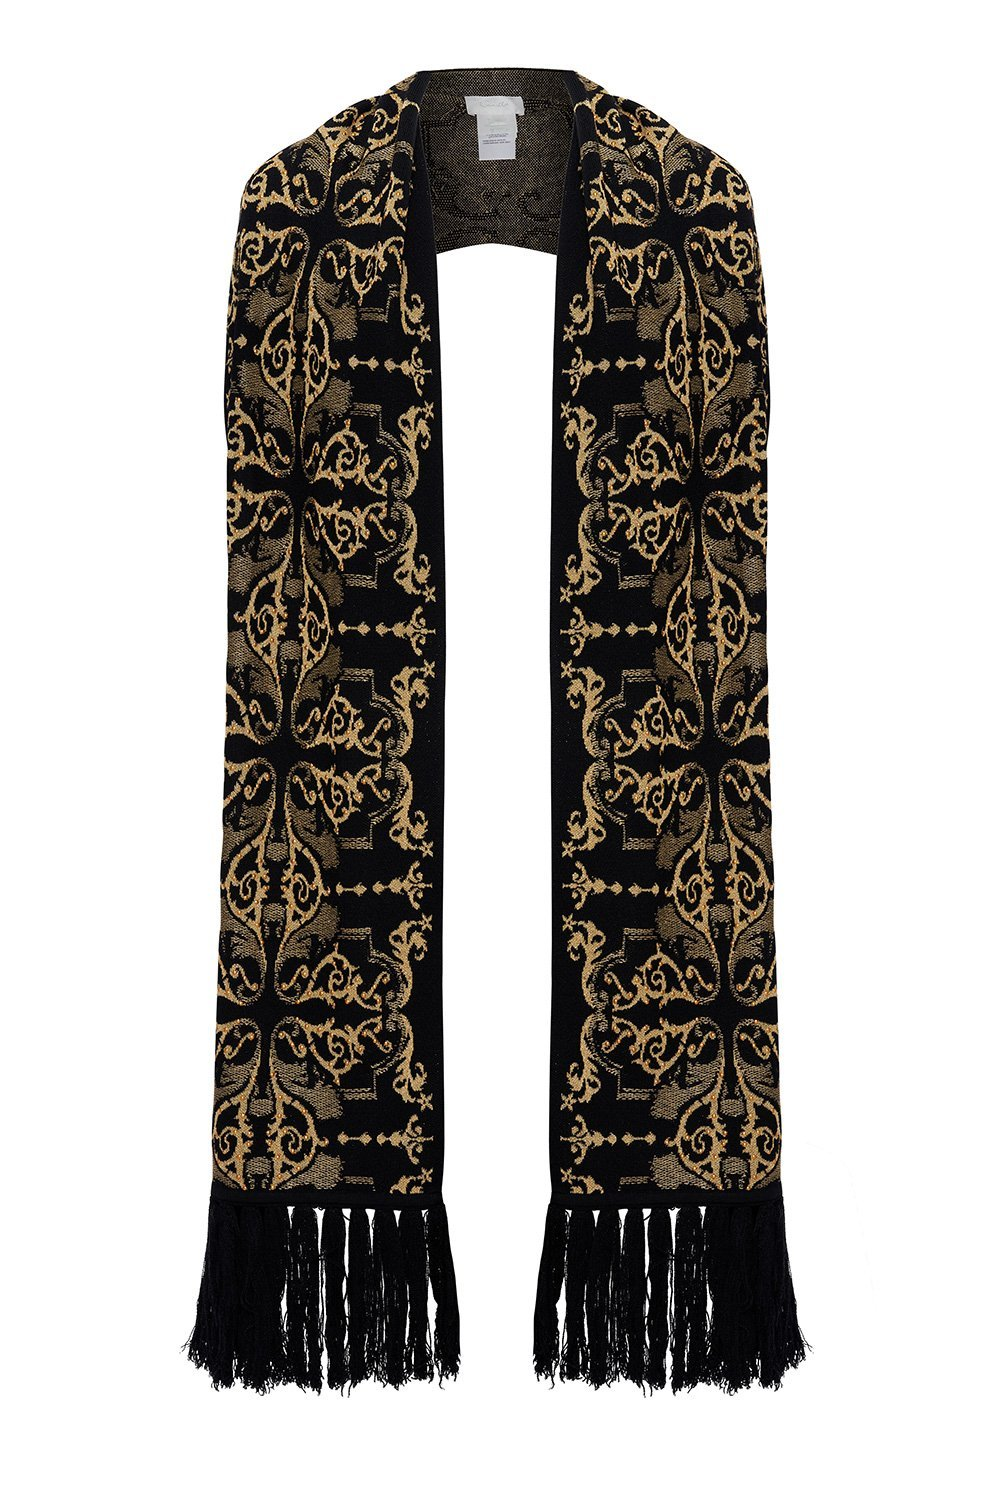 JACQUARD SCARF WITH FRINGING SOLID BLACK